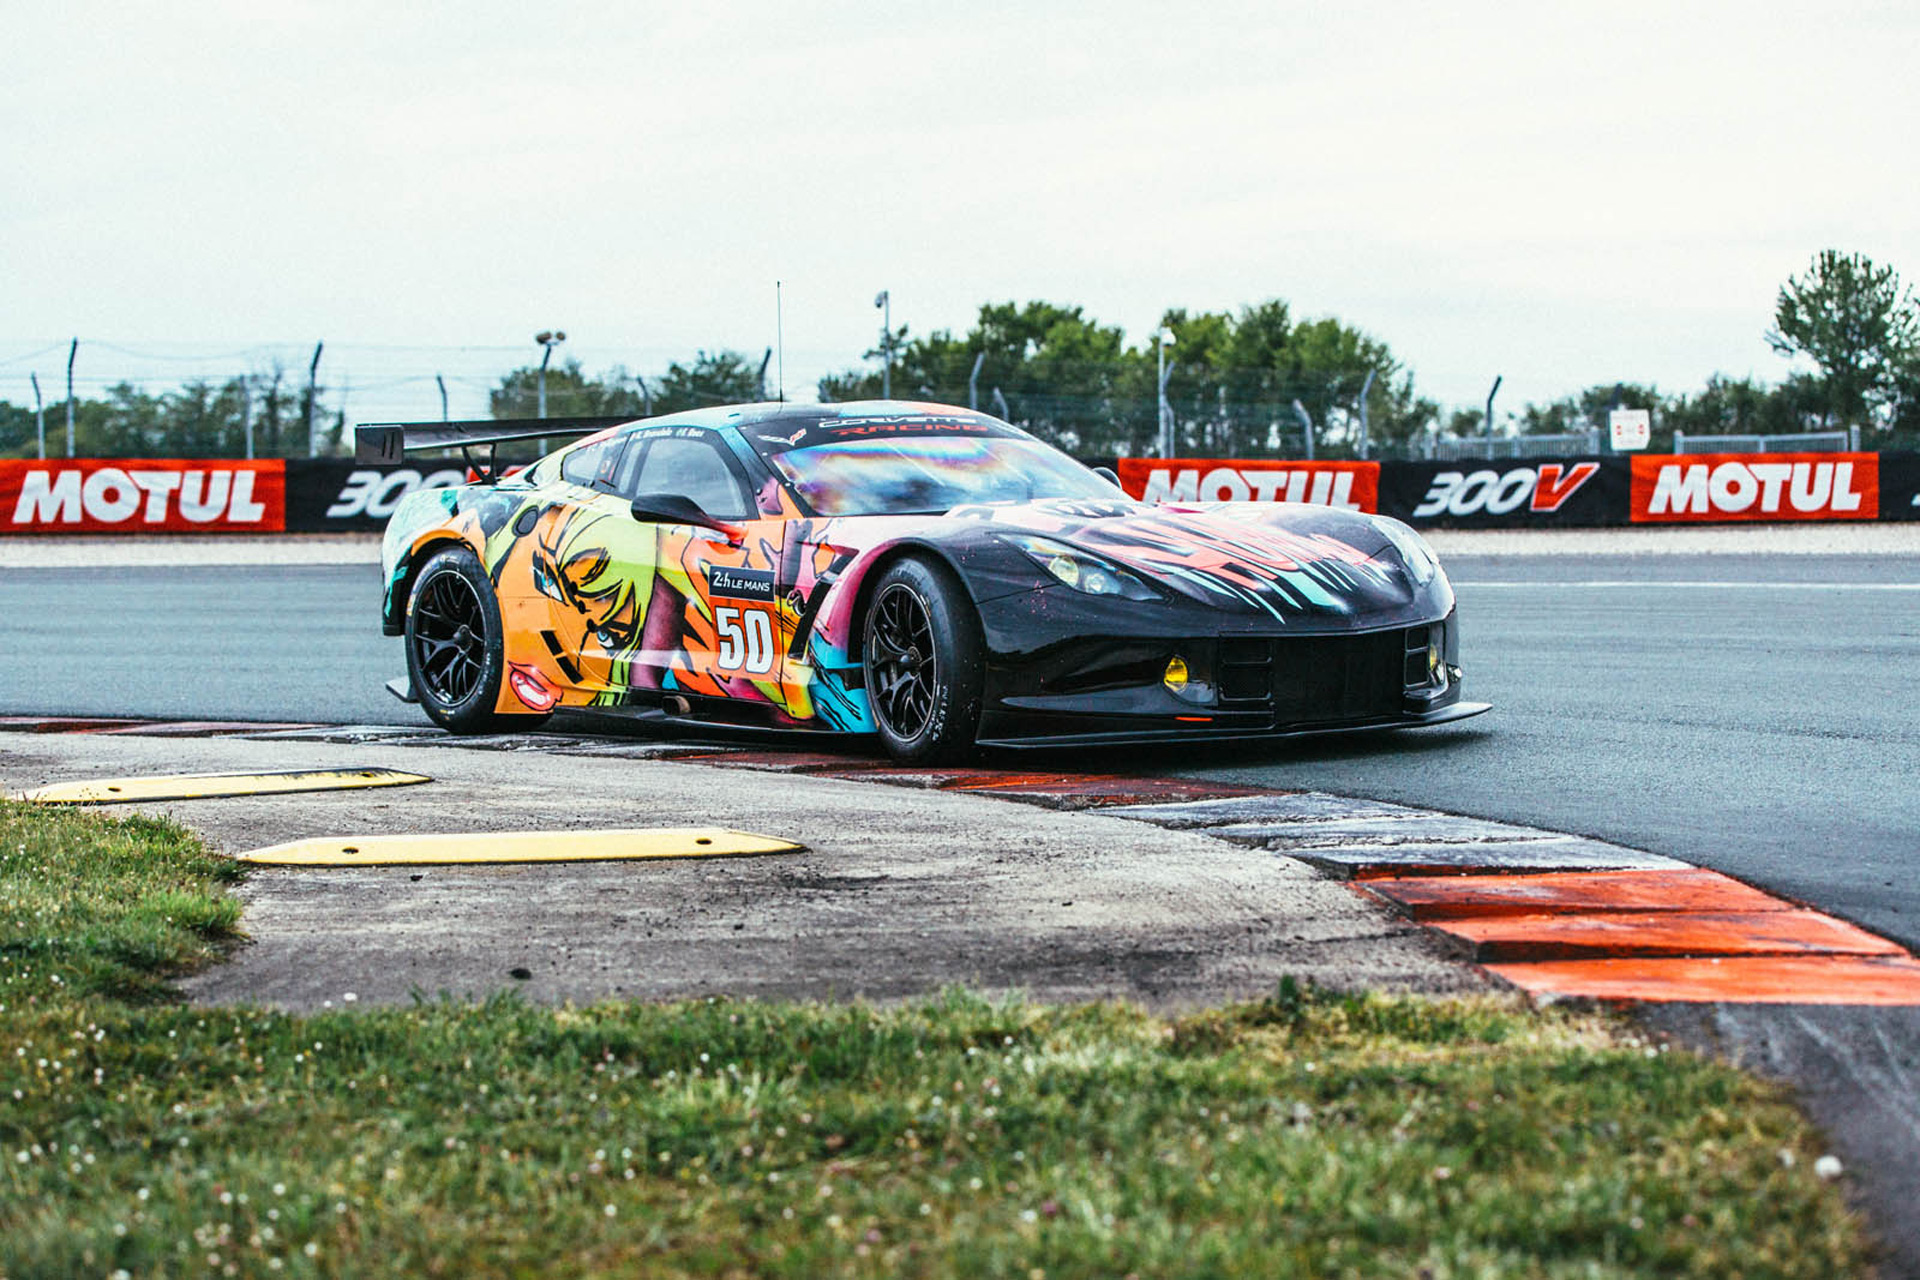 French Team To Race Wild Corvette C7.R Art Car In 24 Hours Of Le Mans